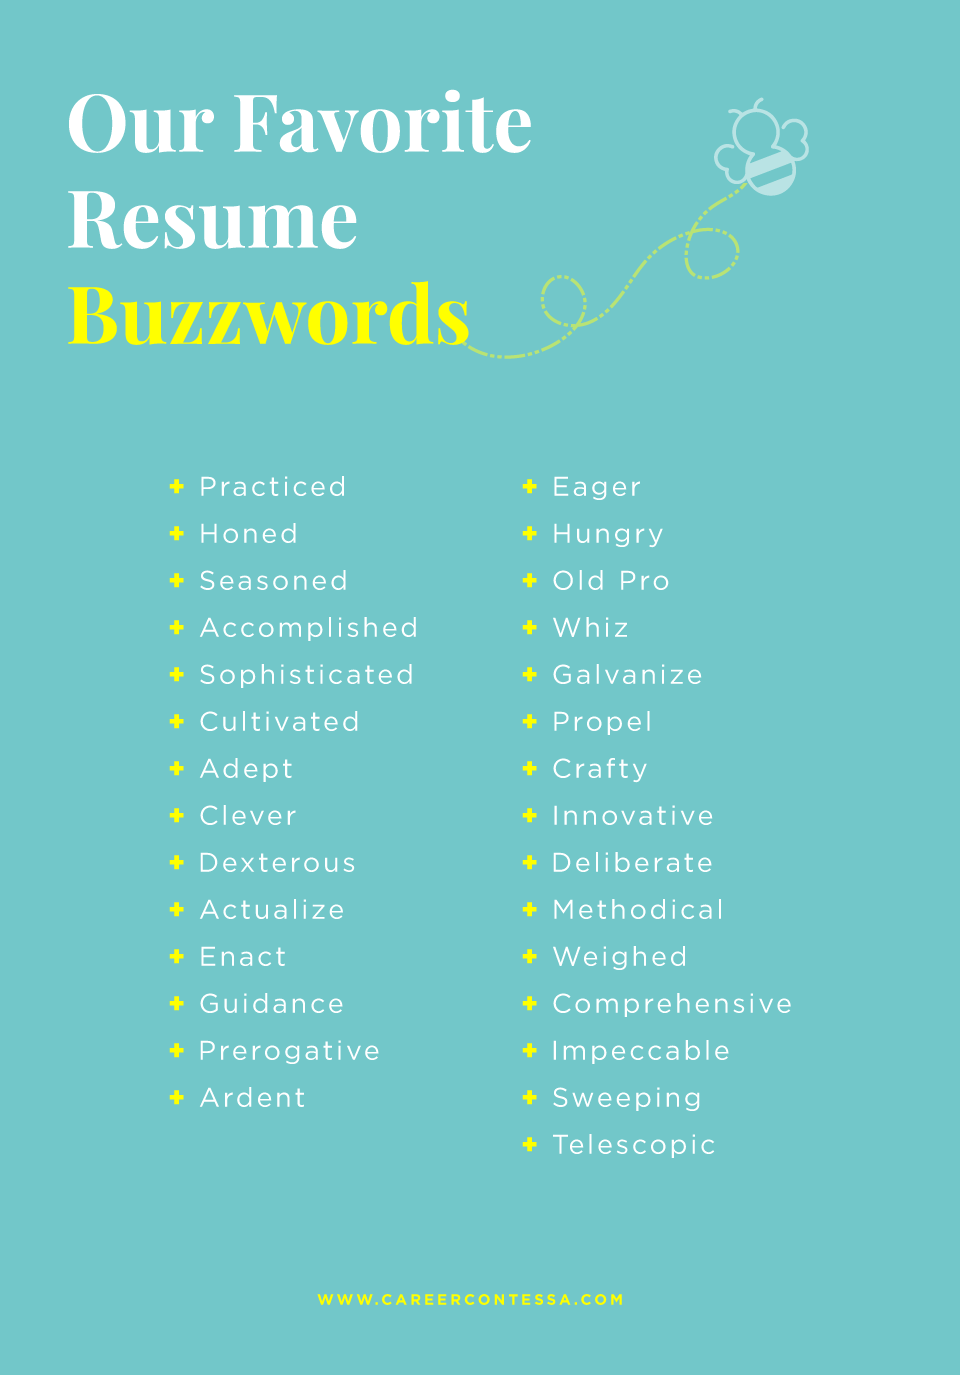 113 resume buzzwords u2014what to use and what to avoid